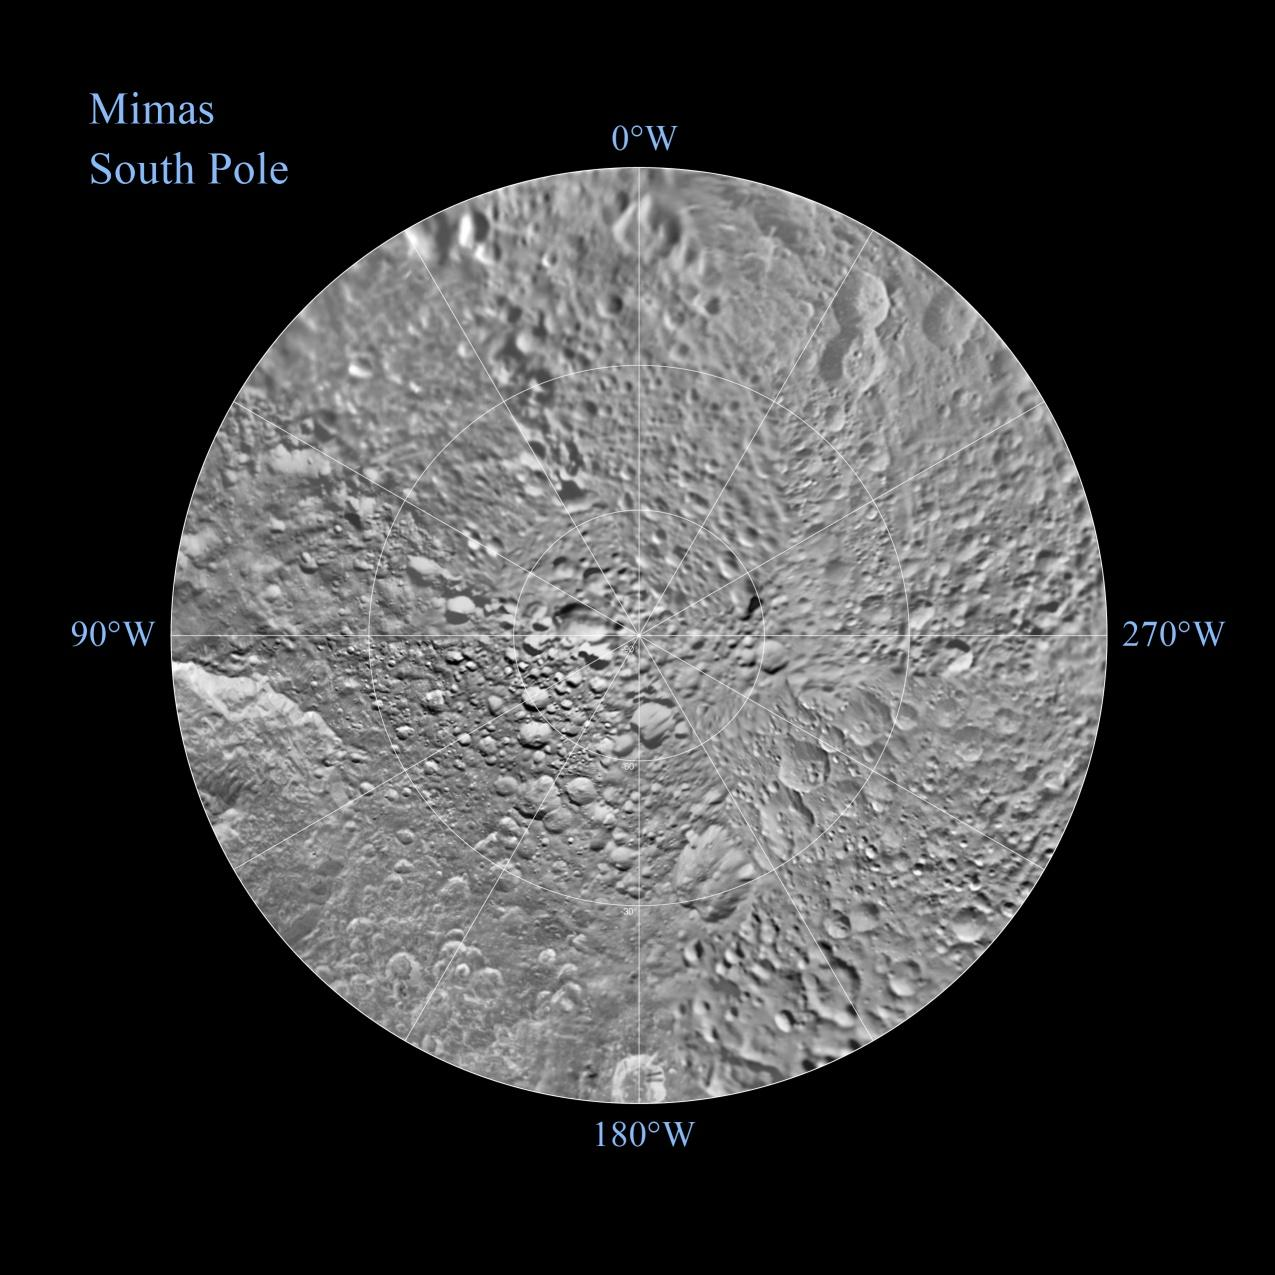 The southern hemisphere of Saturn's moon Mimas is seen in these polar stereographic maps, mosaicked from the best-available Cassini and Voyager images.